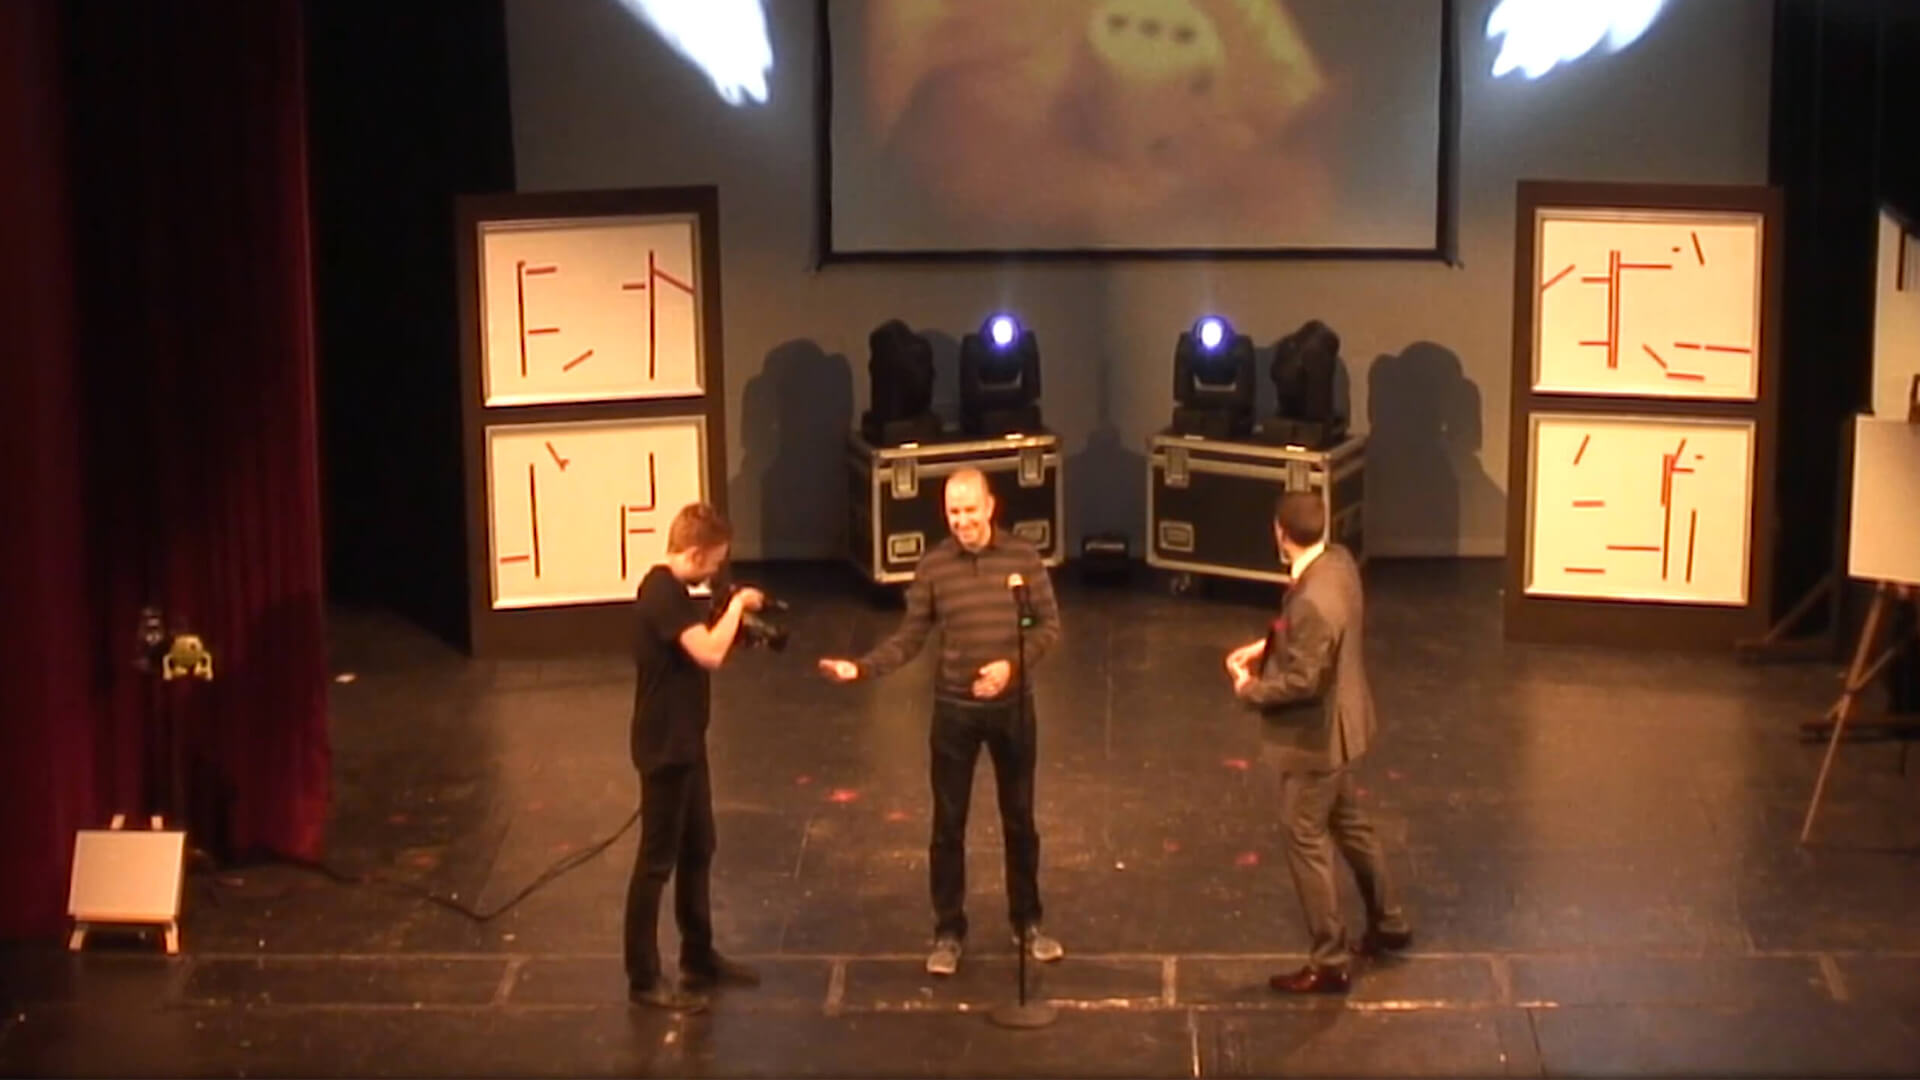 Aaron in a theatre performing stage entertainment